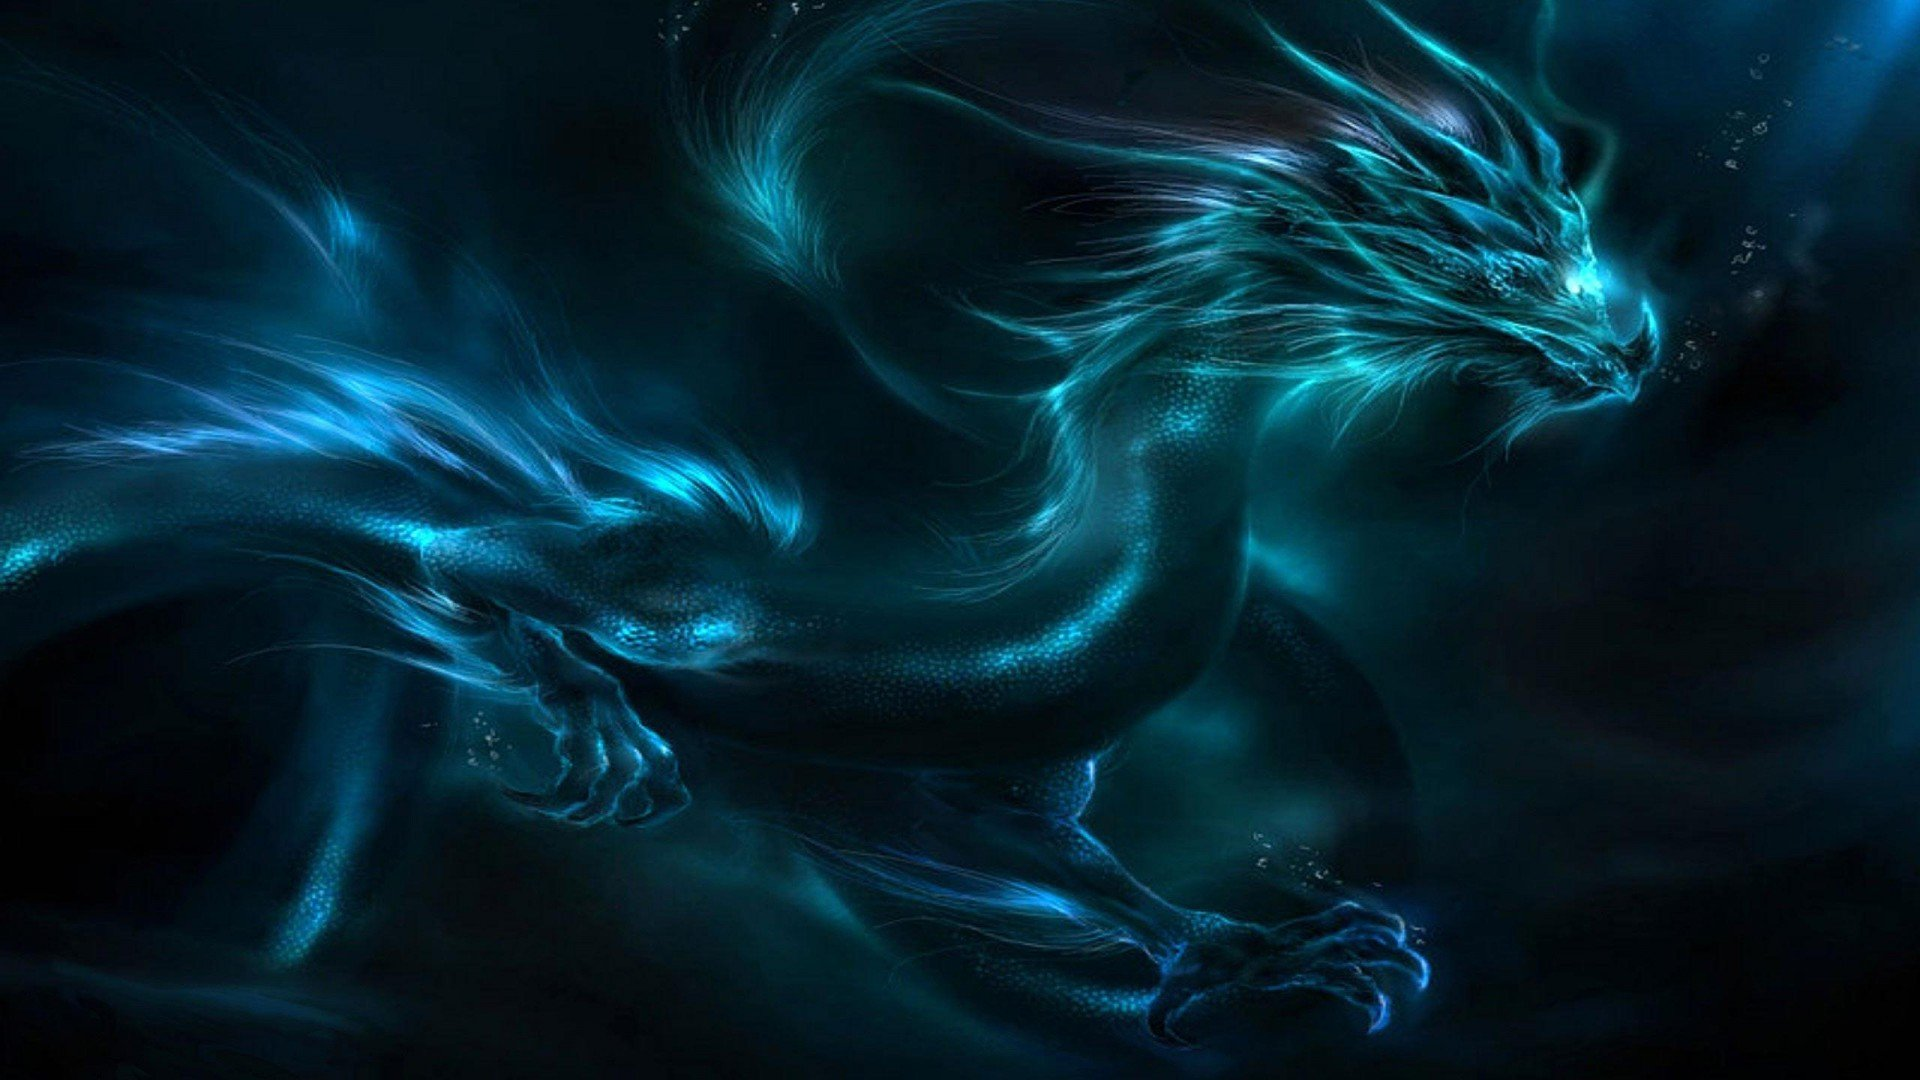 43 Blue Dragon Wallpaper Hd On Wallpapersafari